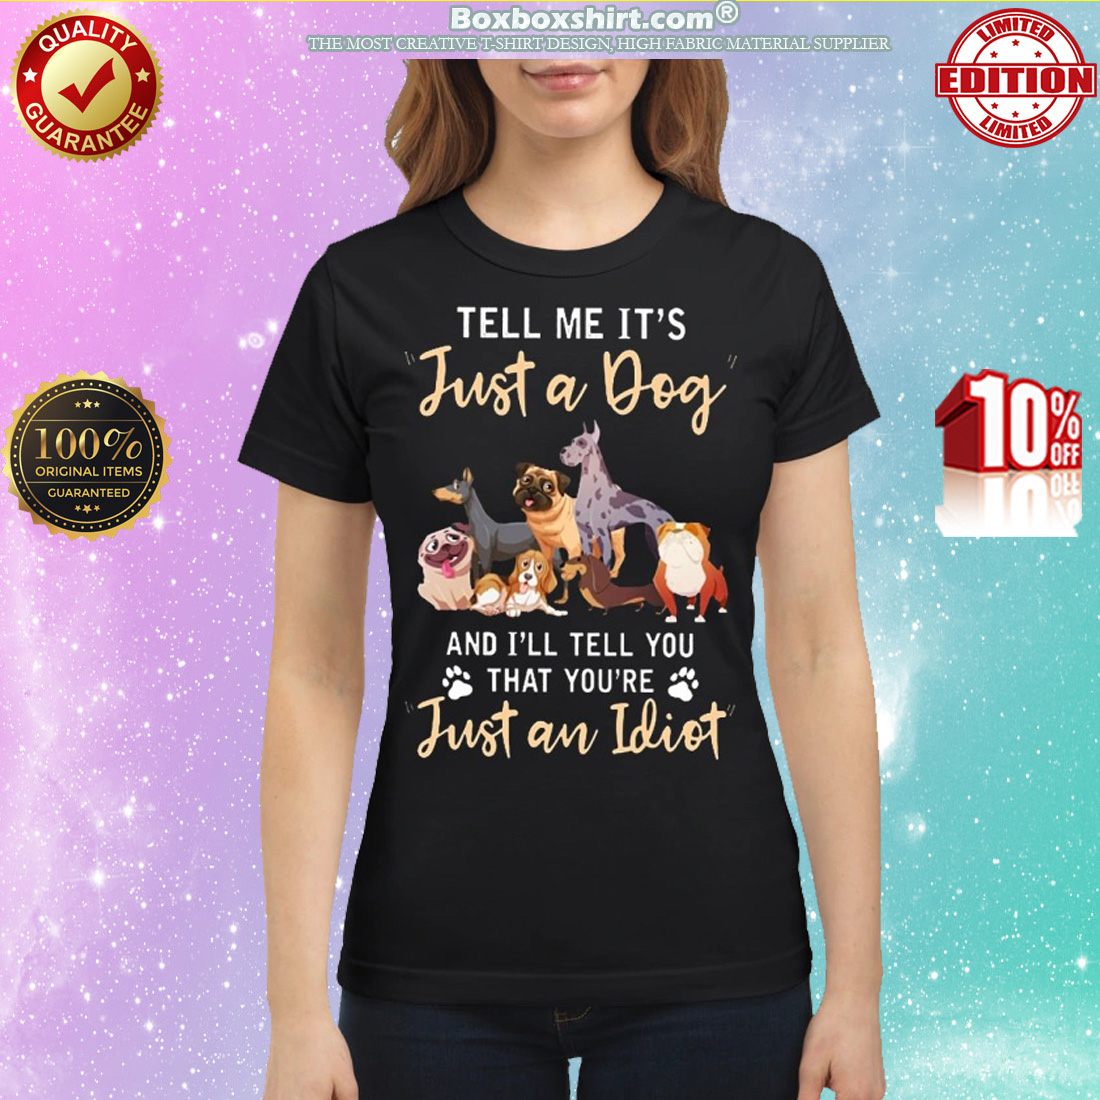 Tell me It's just a dog and I will tell you that you're just an idiot classic shirt